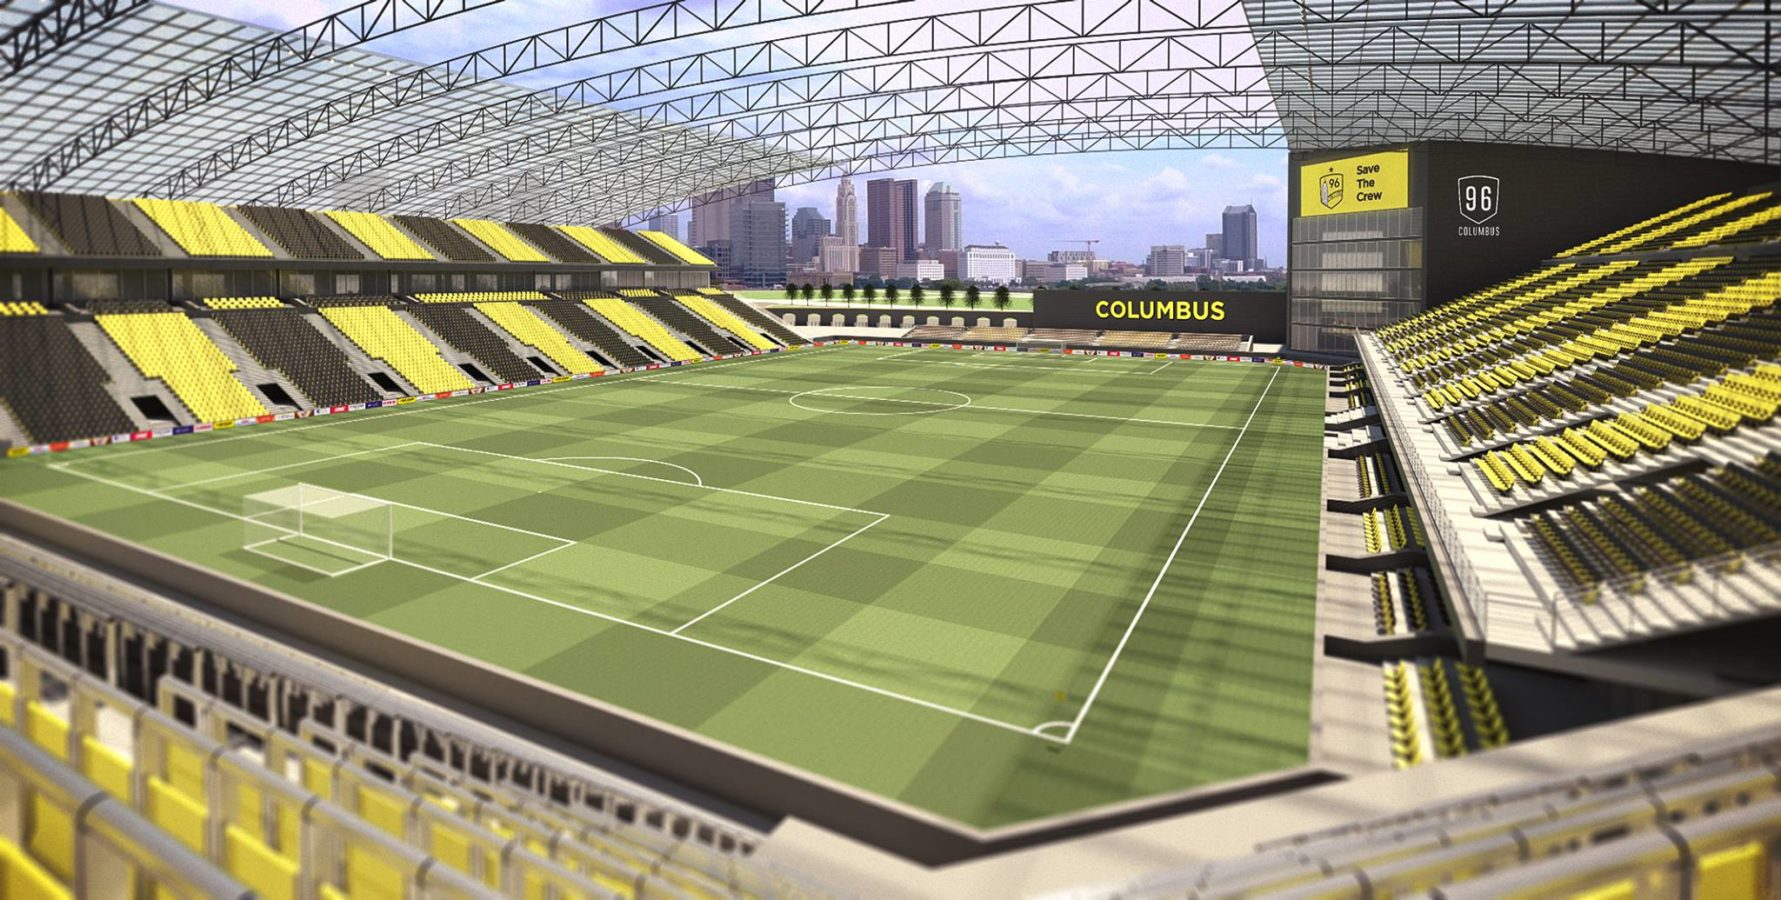 How To Return A Used Car To The Dealer >> On Eve of Austin MLS Vote, Mark Wahlberg Expresses Interest in Crew - Soccer Stadium Digest